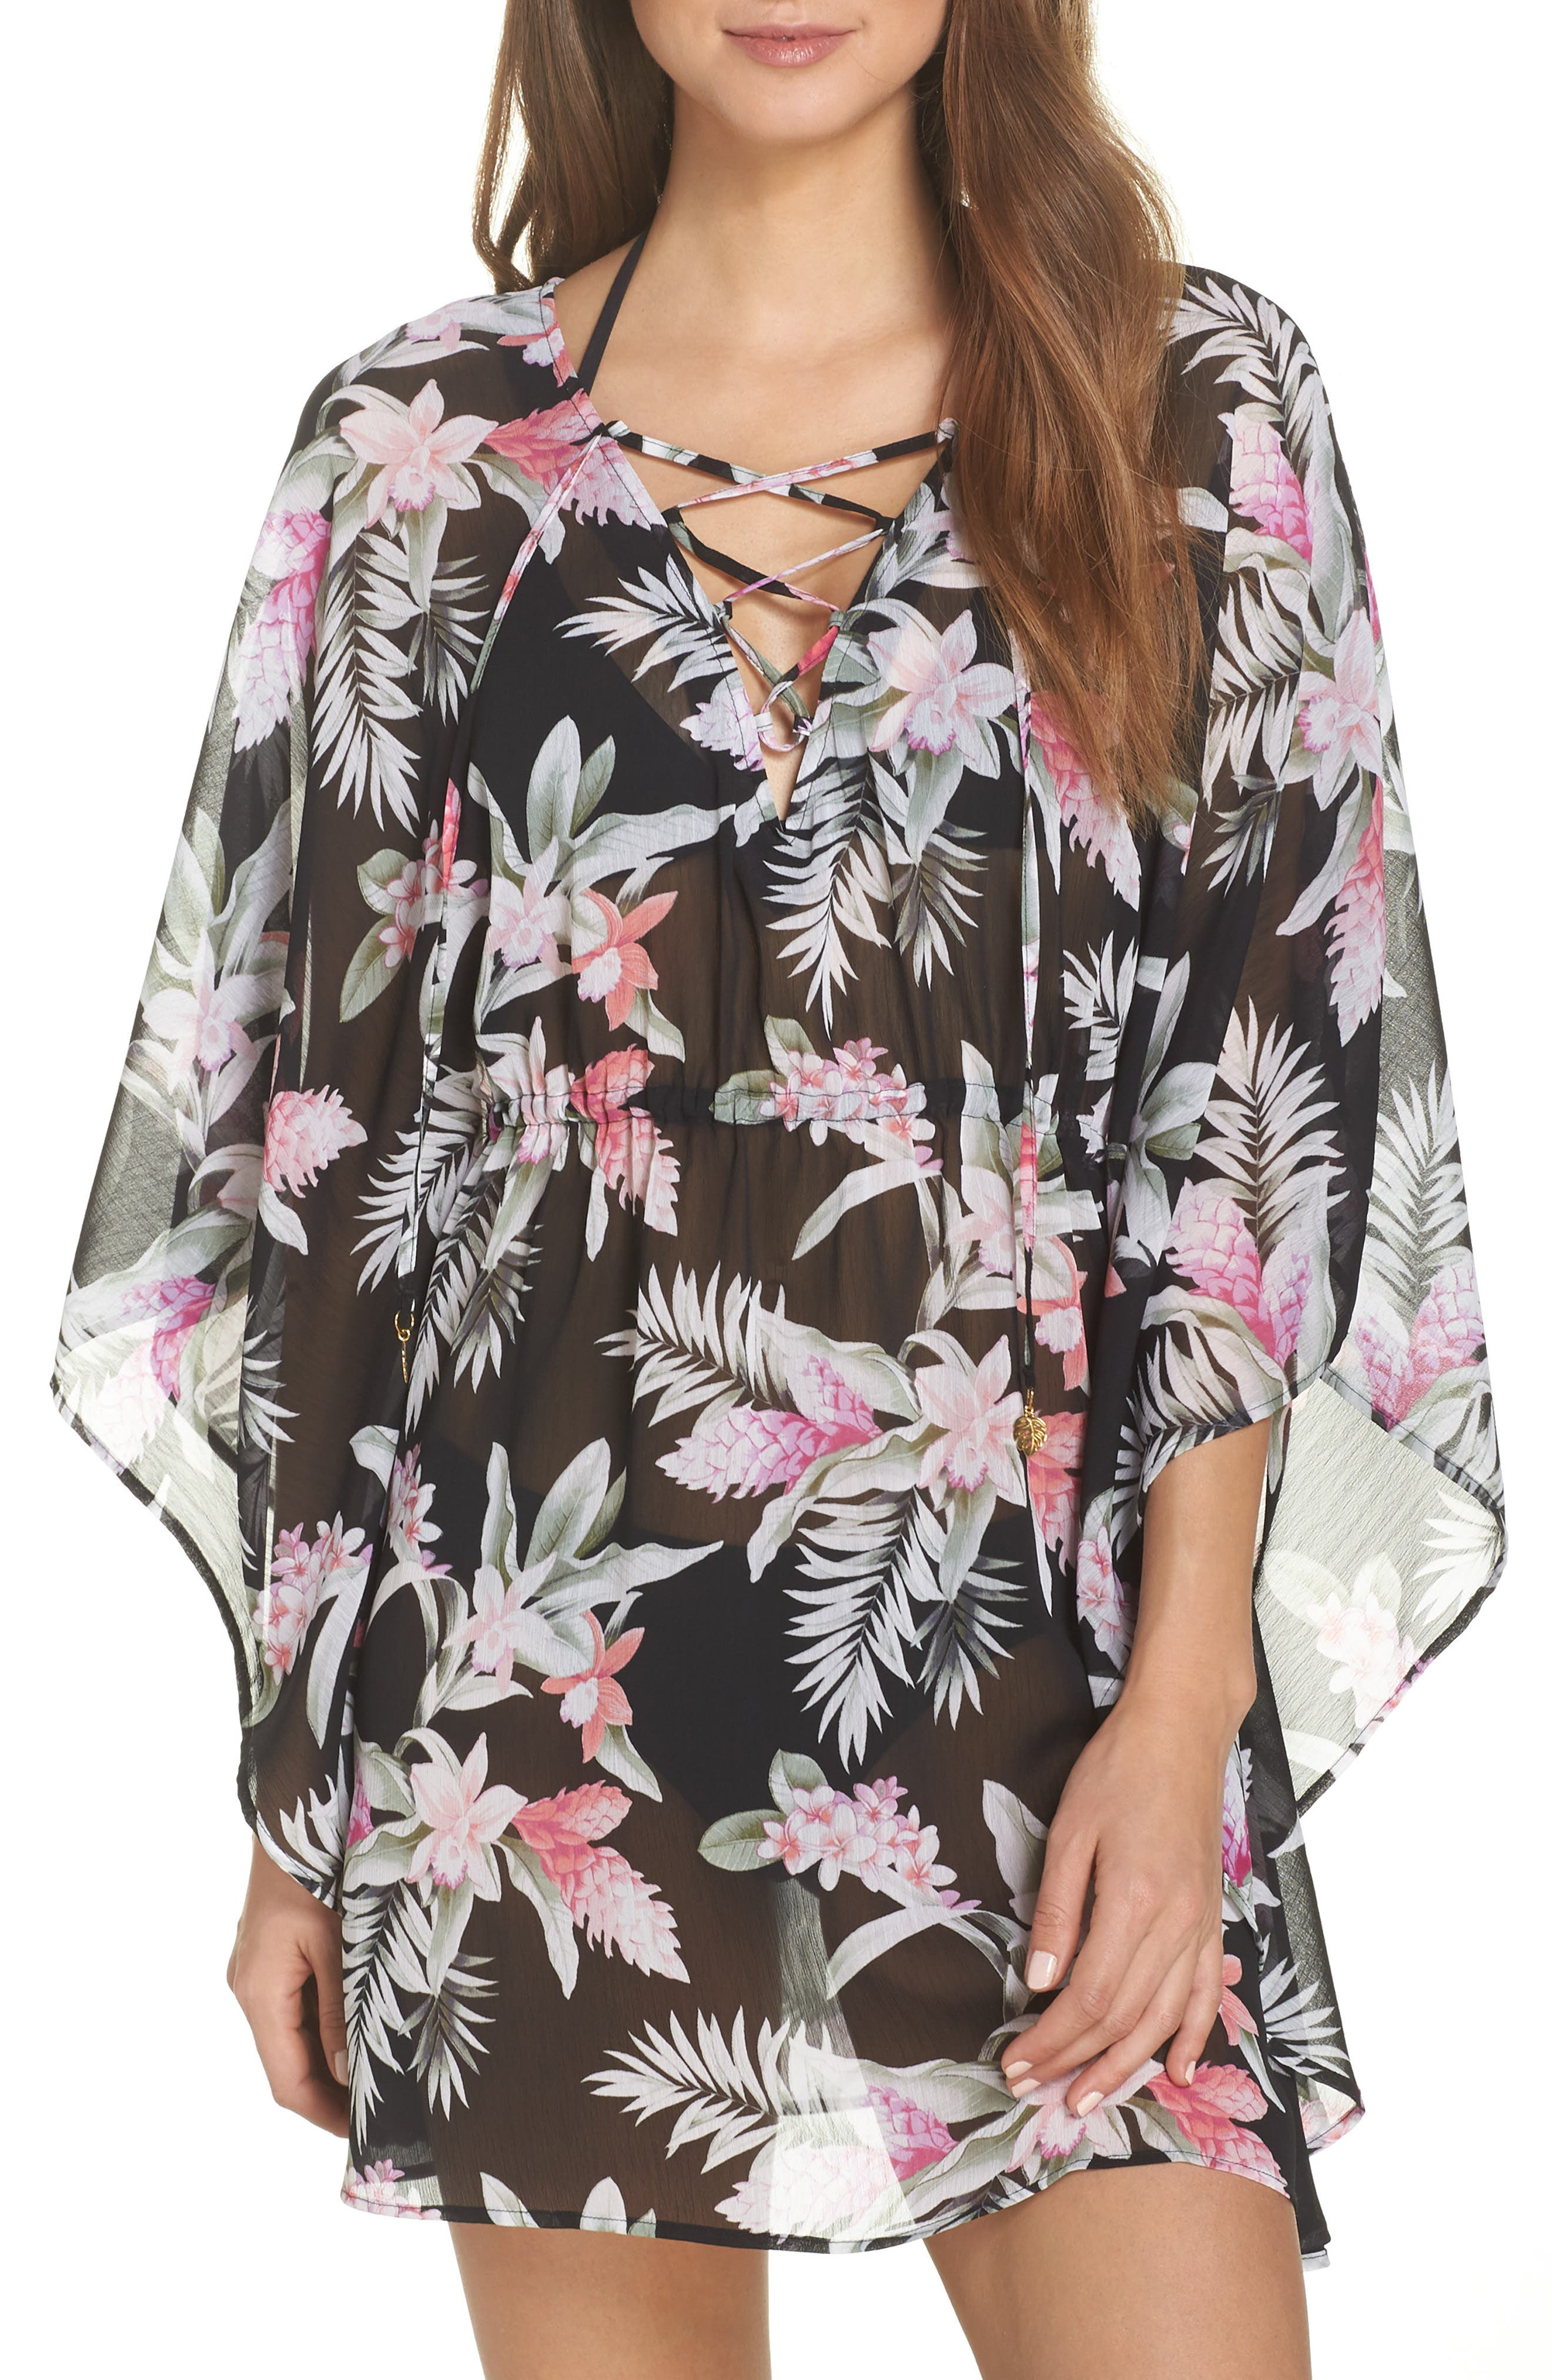 Ginger Flowers Open-Back Lace-Up Tunic in Black